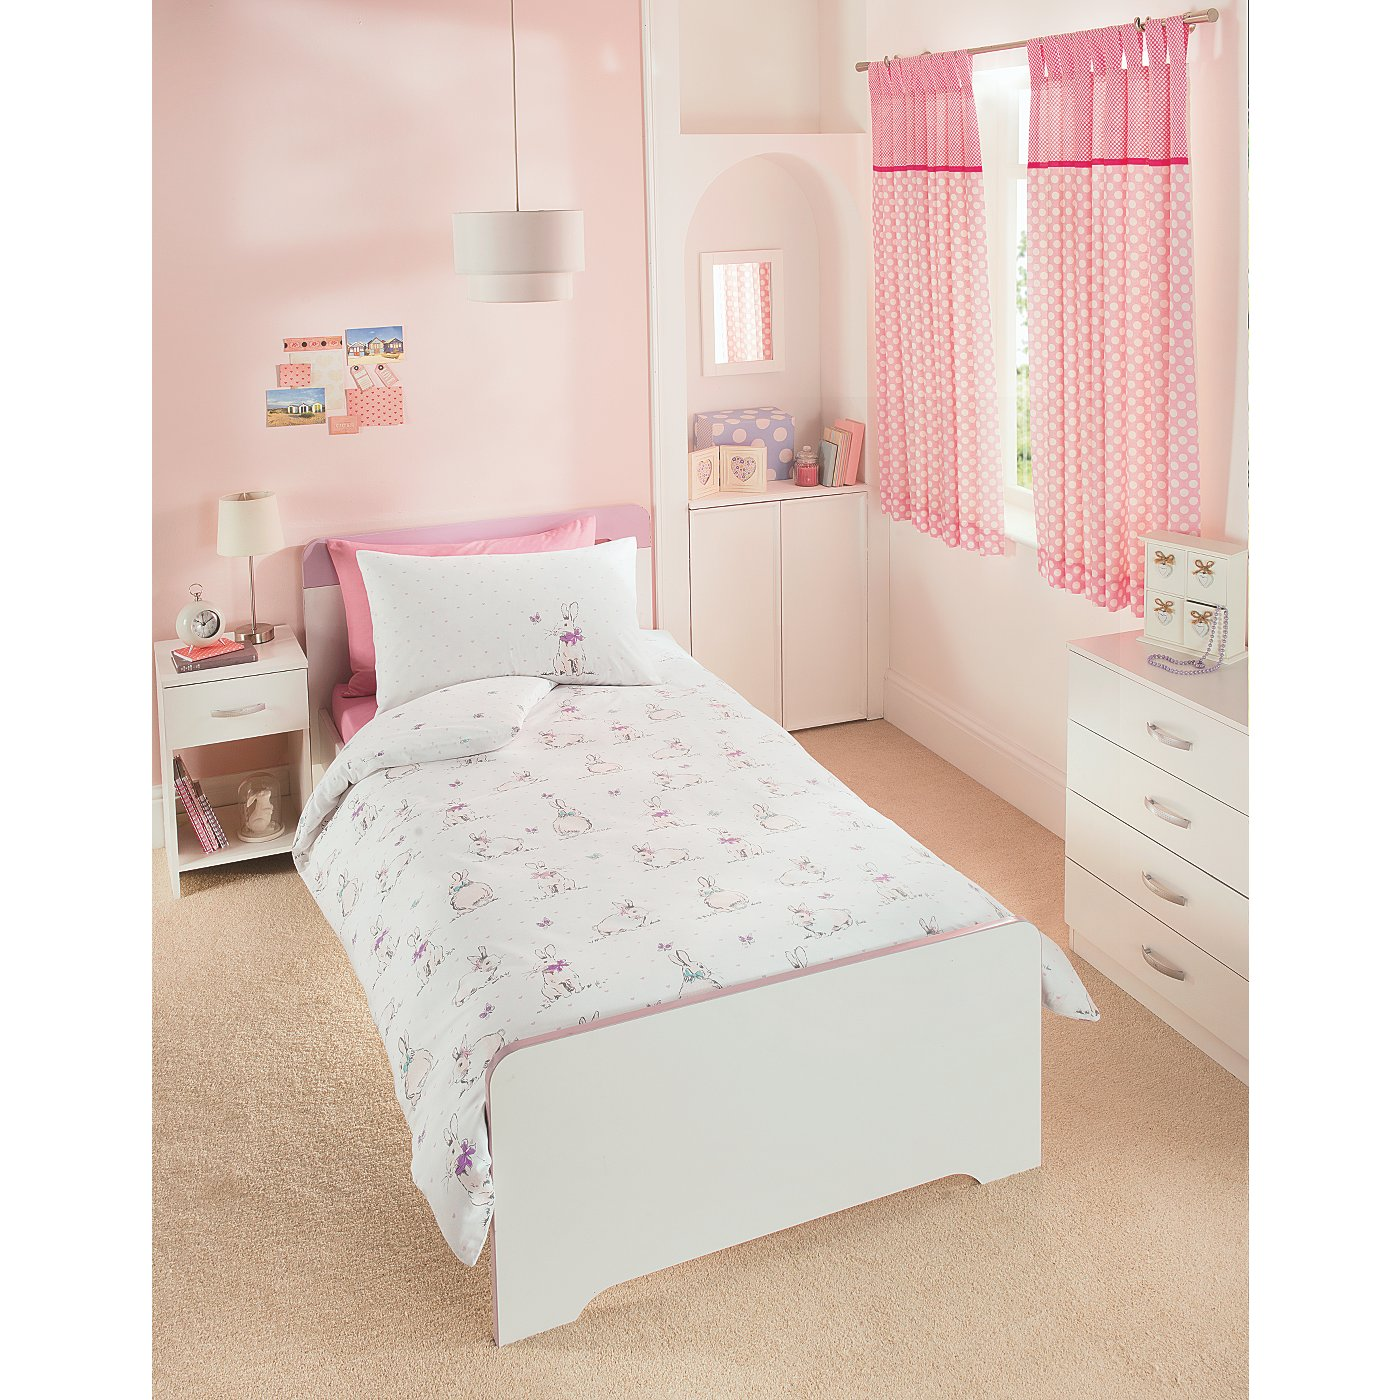 George Home Bunny Bedroom Range Loading Zoom